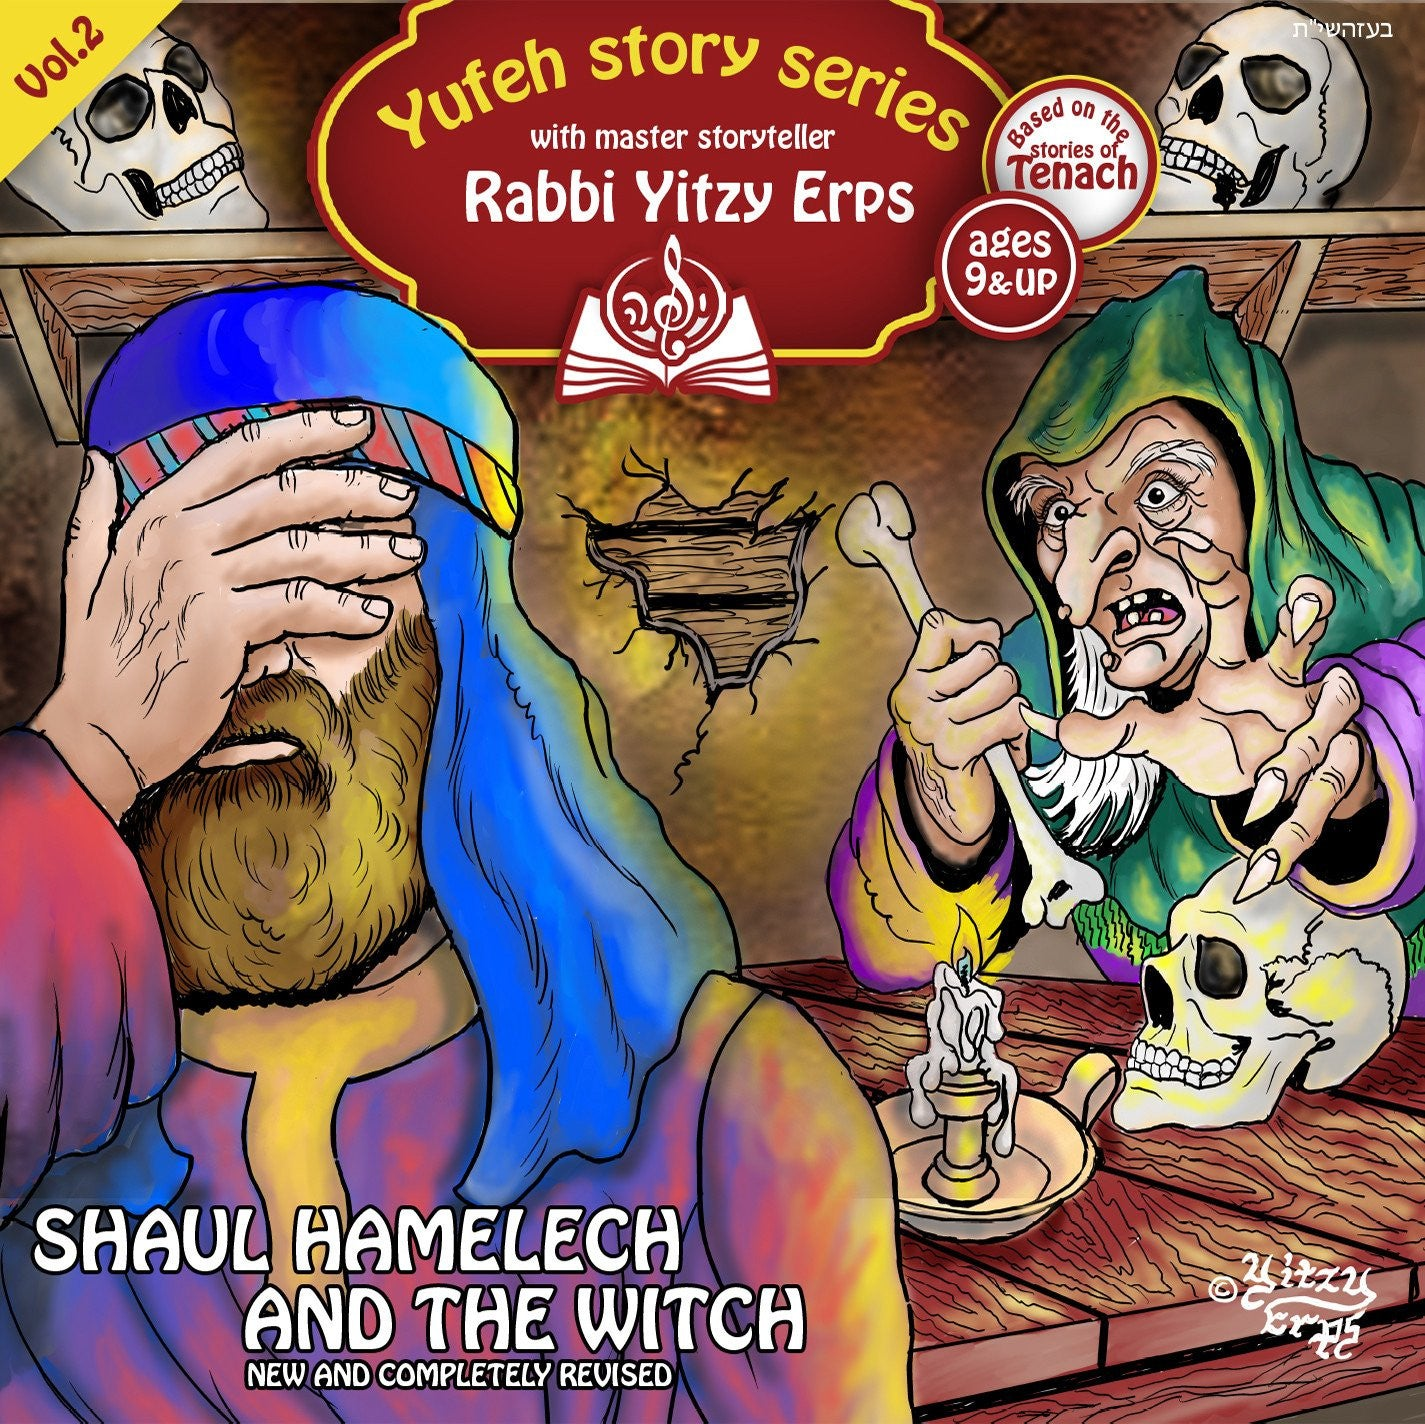 Yitzy Erps - Shaul Hamelech and The Witch